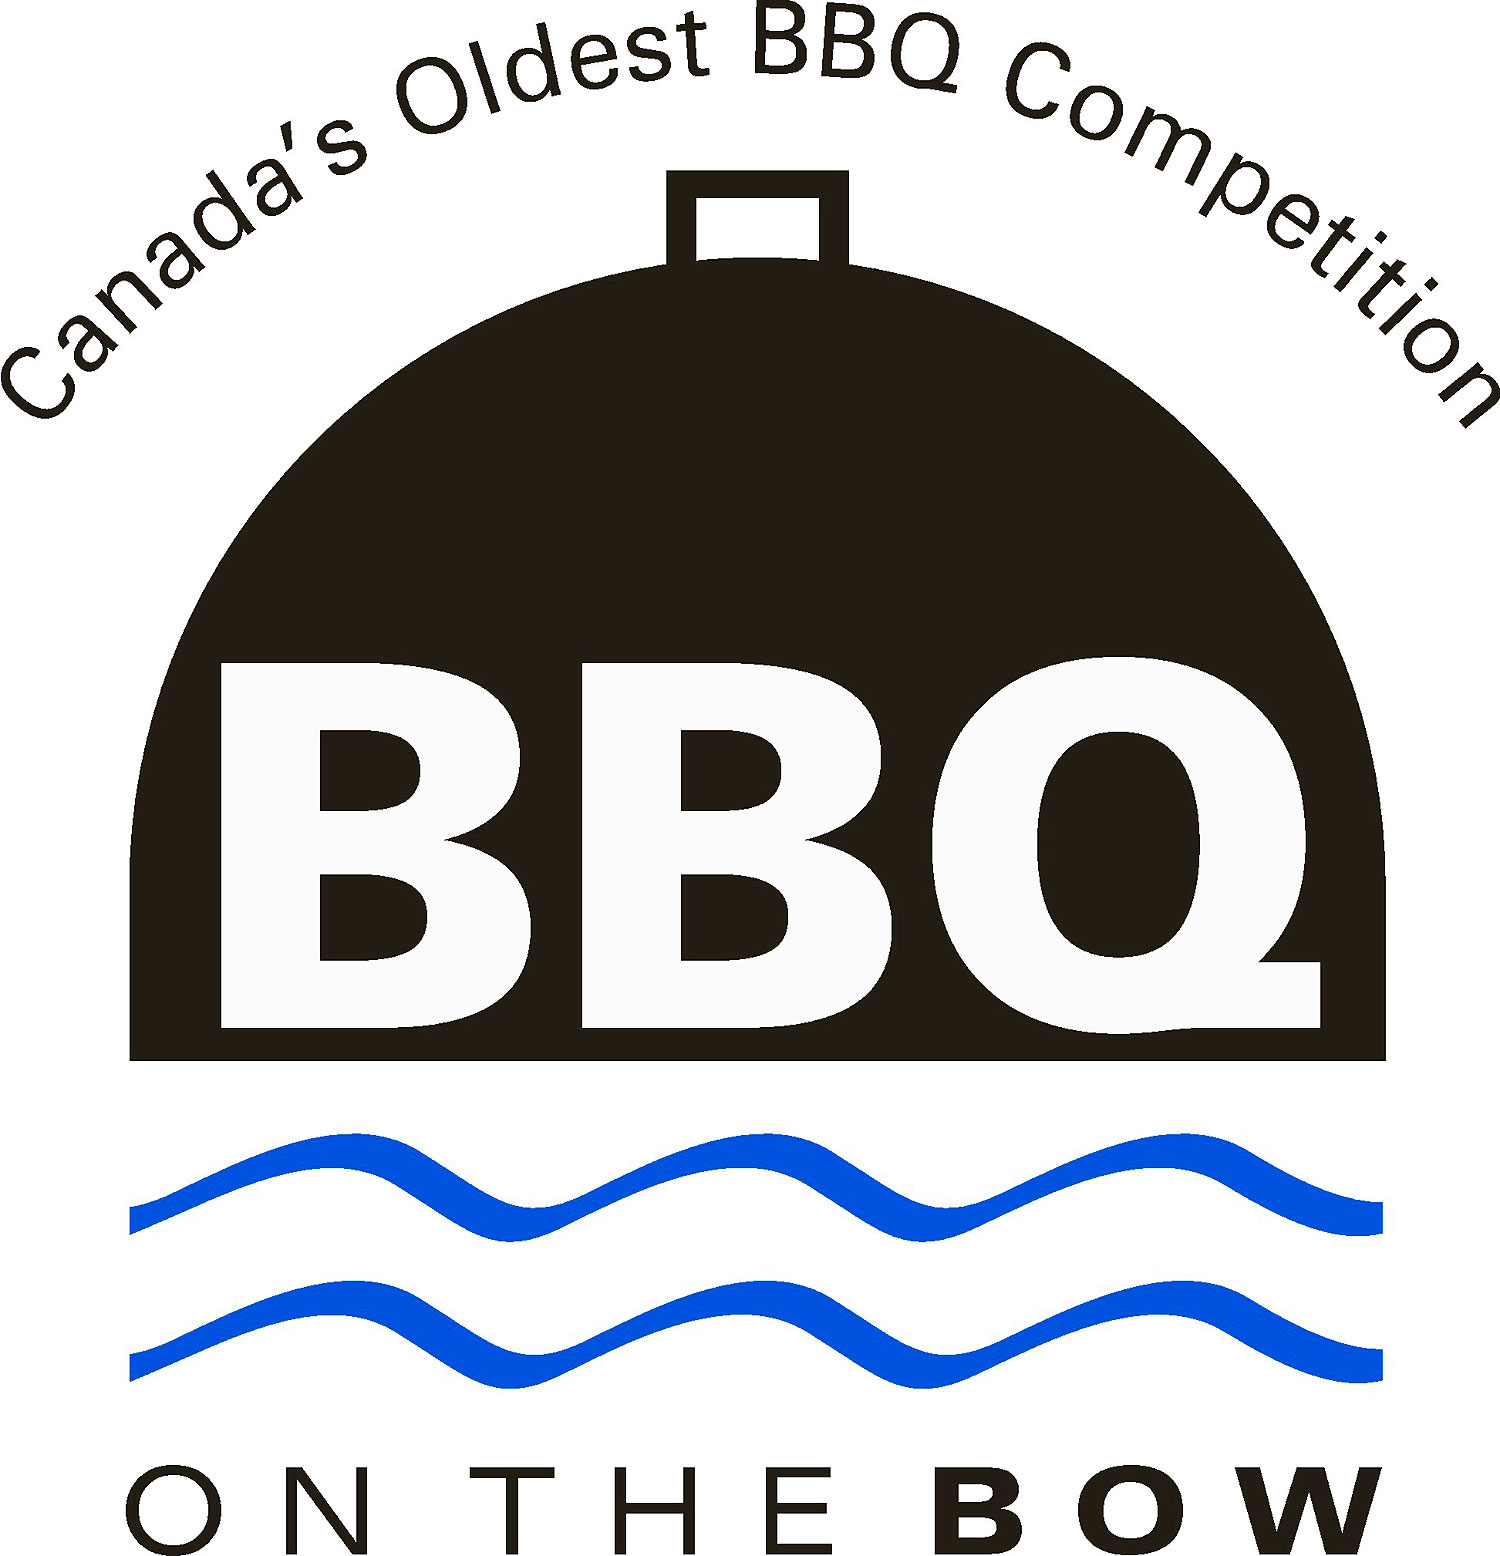 barbecue on the bow calgary alberta august312014